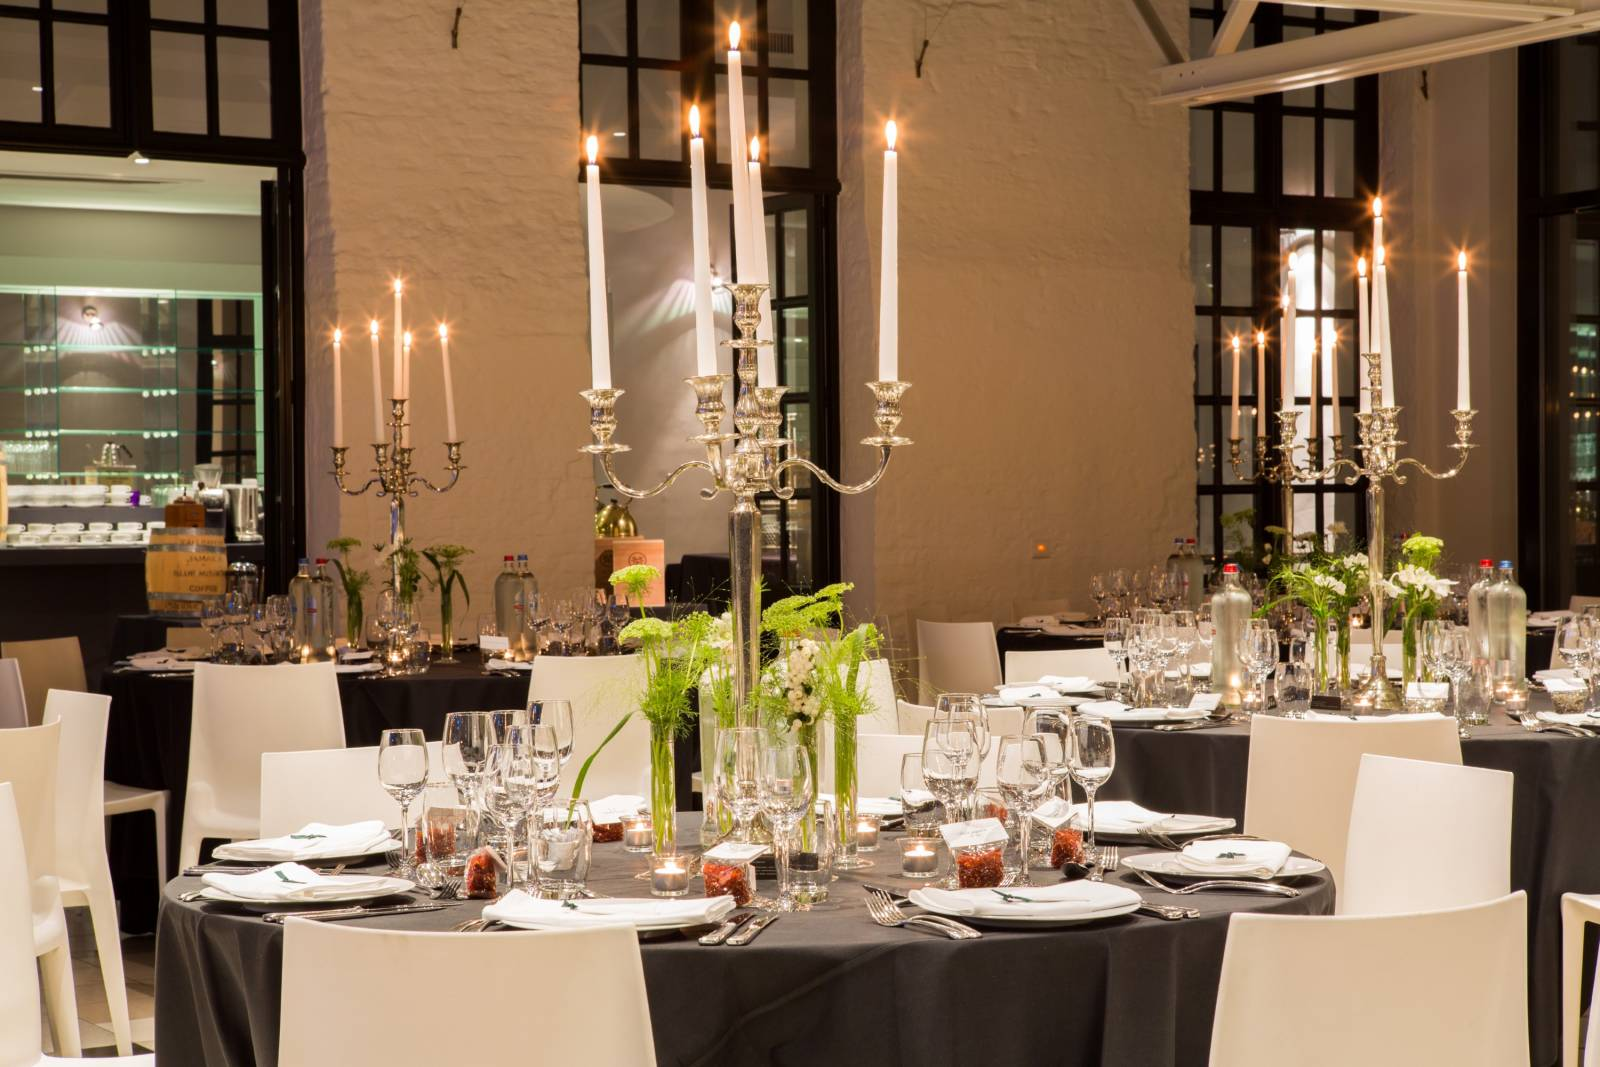 House of Weddings Kasteel Te Lake Feestzaal Oost-Vlaanderen Catering Ceremonie Zulte Gent (18)